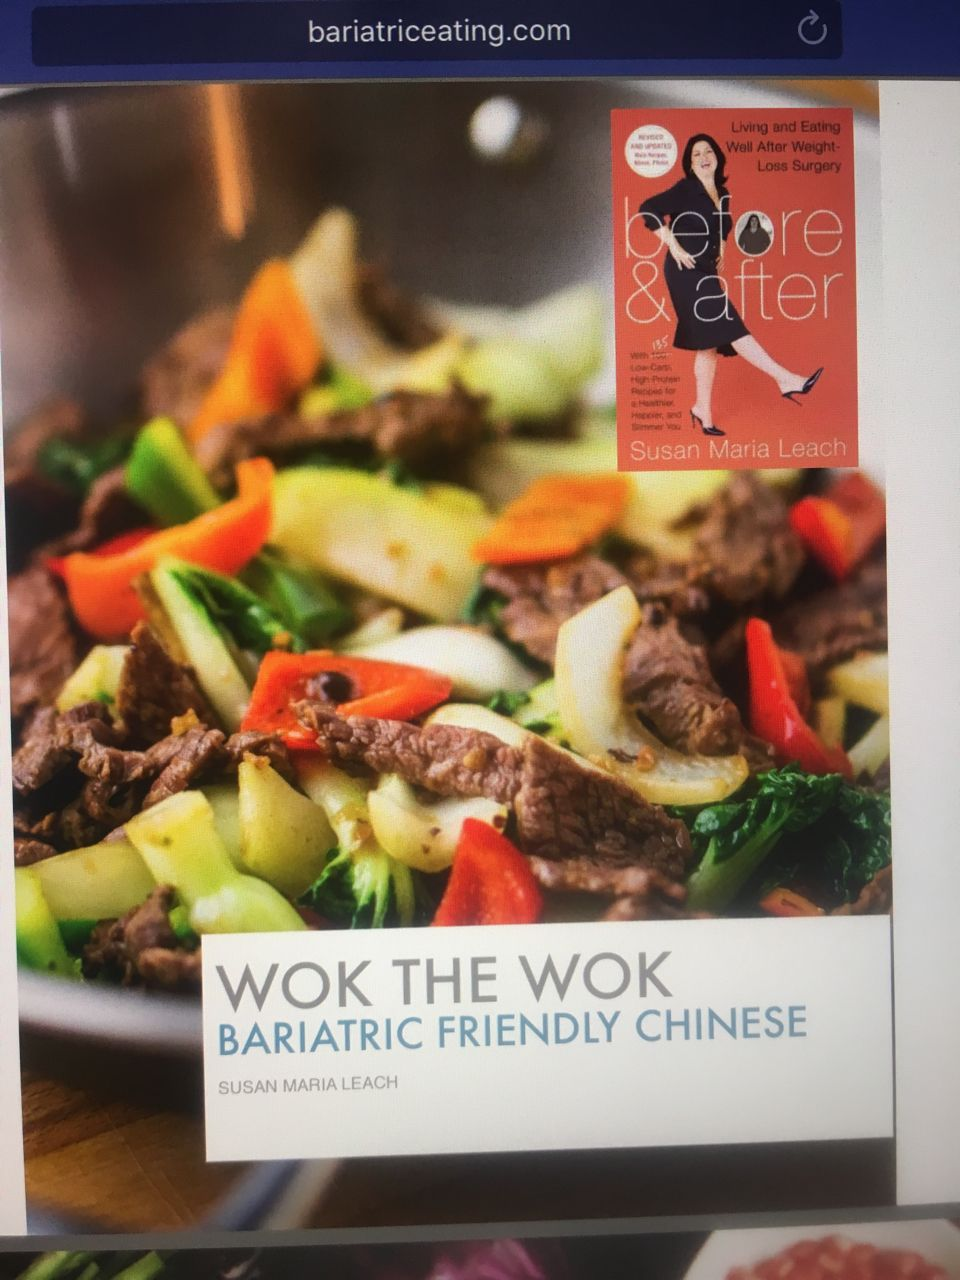 Wok the wok bariatric friendly chinese httpbariatriceating food forumfinder Choice Image